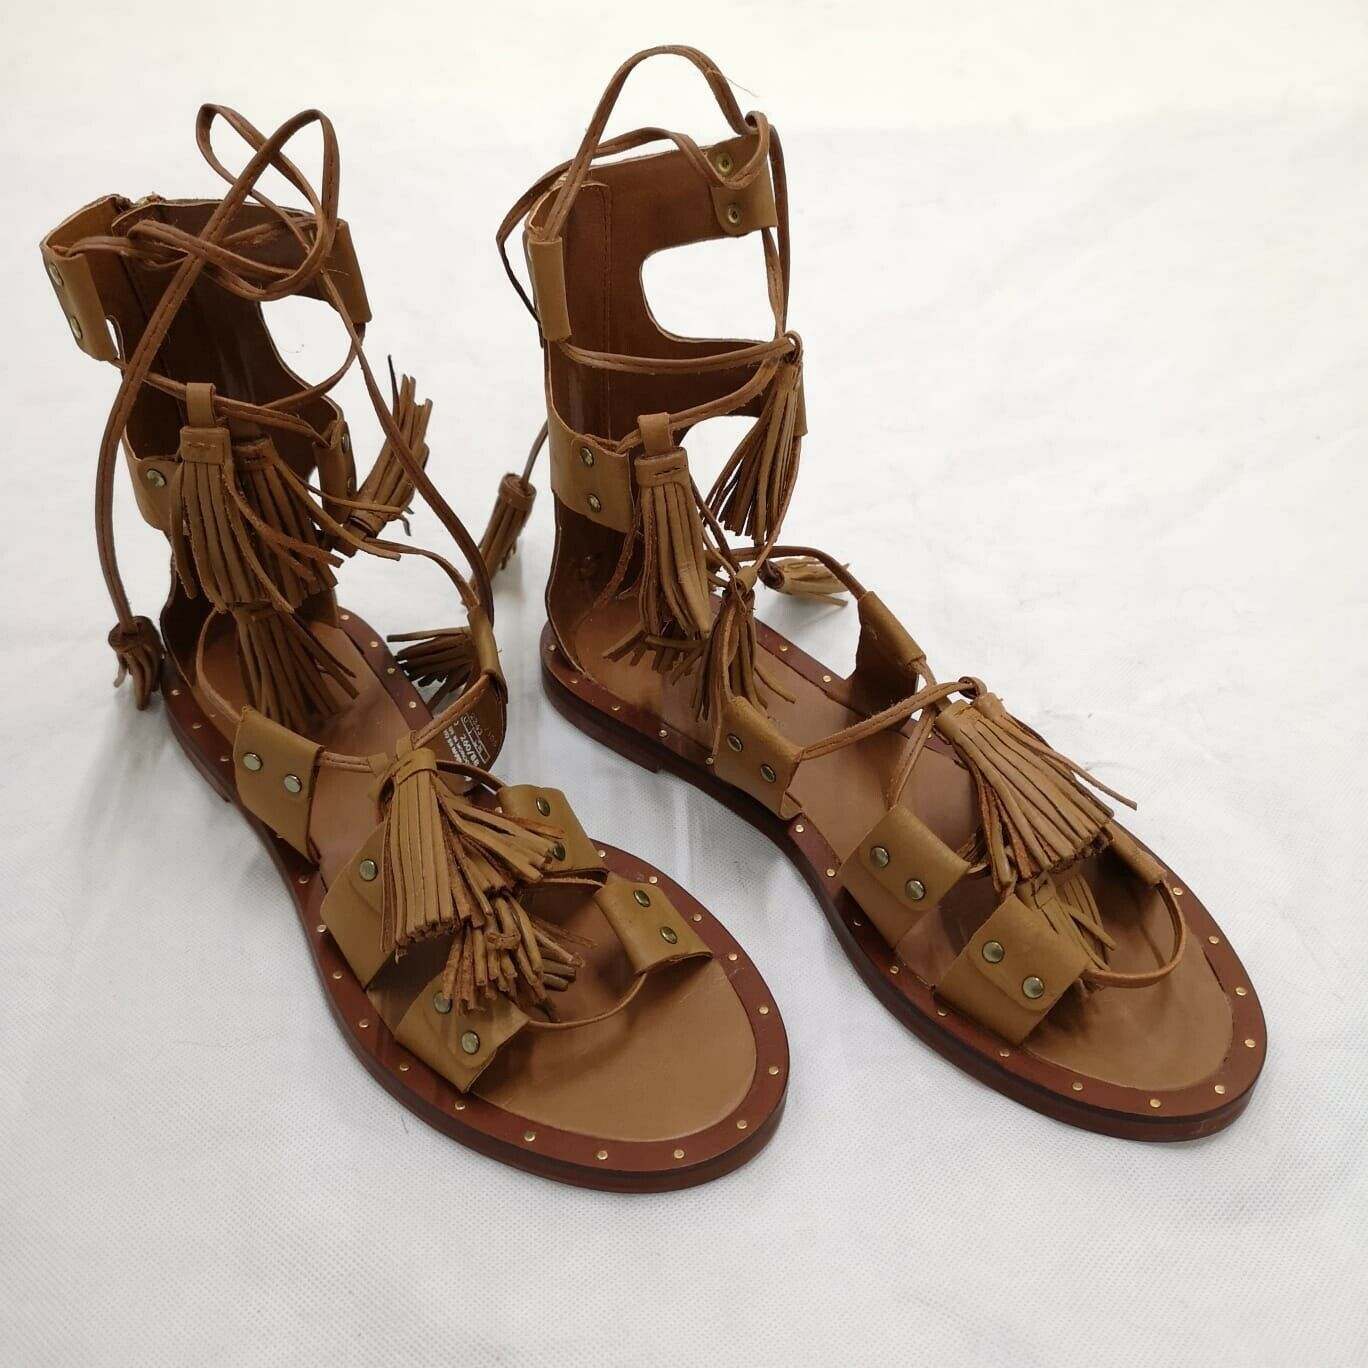 ZARA Tan Lace Up Flat Leather Fringe Gladiator Sandals UK 7 Euro 40